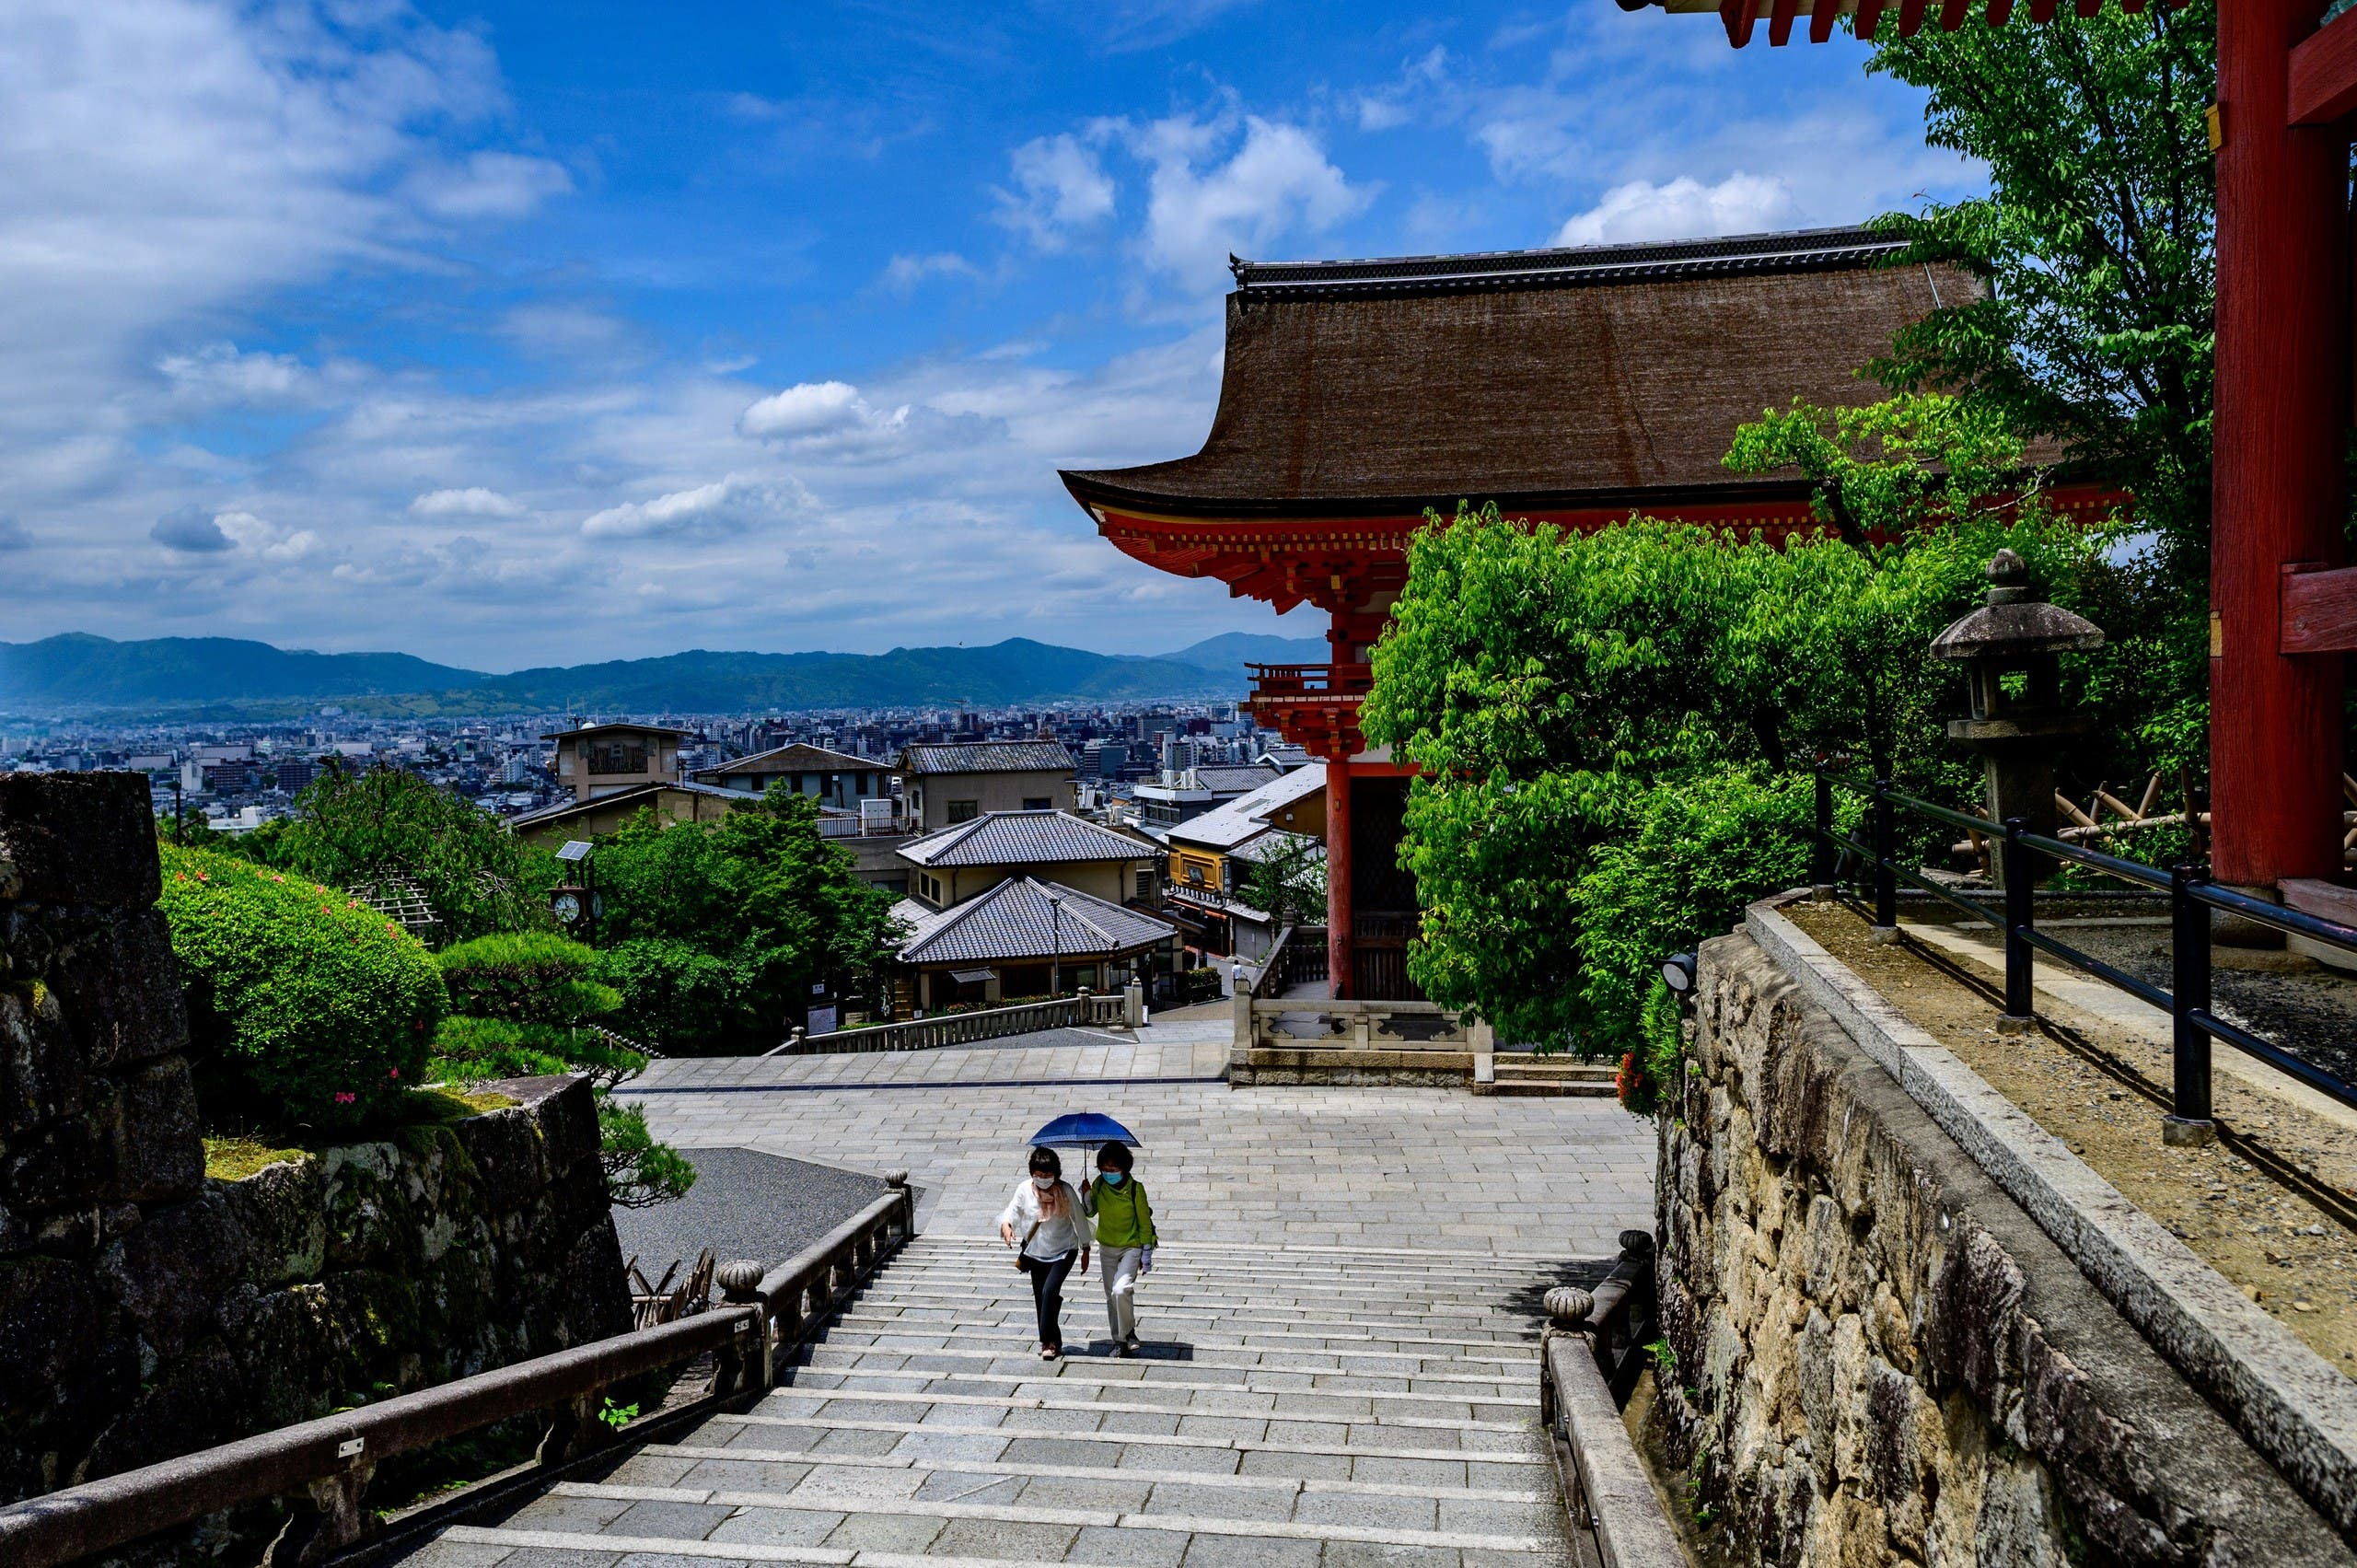 Visitors at the Kiyomizu temple, a UNESCO site near Kyoto, Japan, May 22, 2020. (AFP)